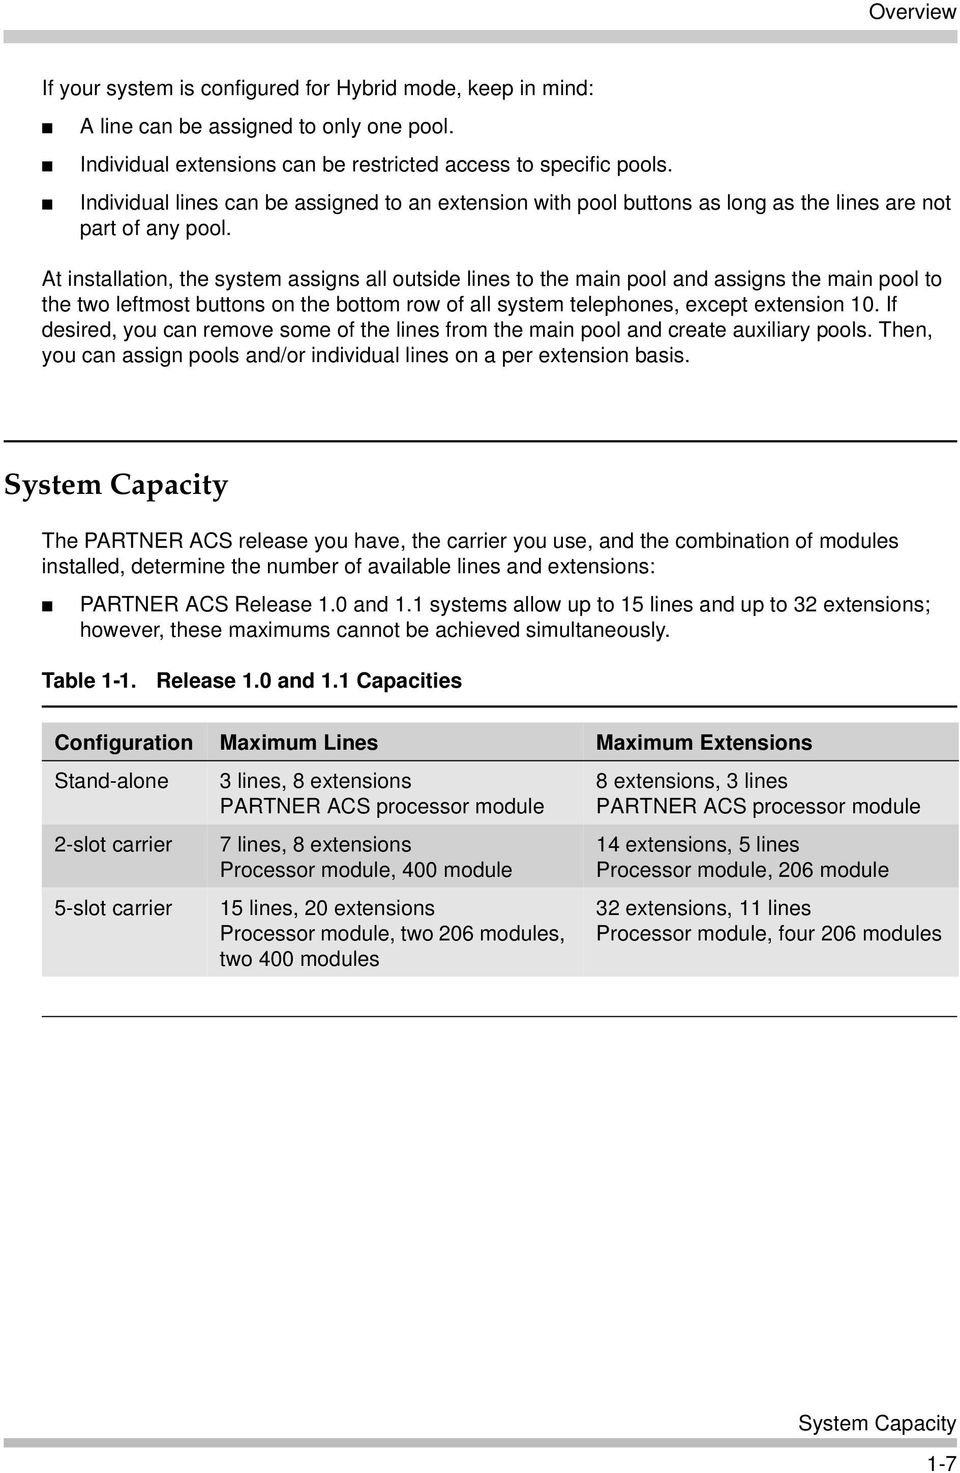 At installation, the system assigns all outside lines to the main pool and  assigns the